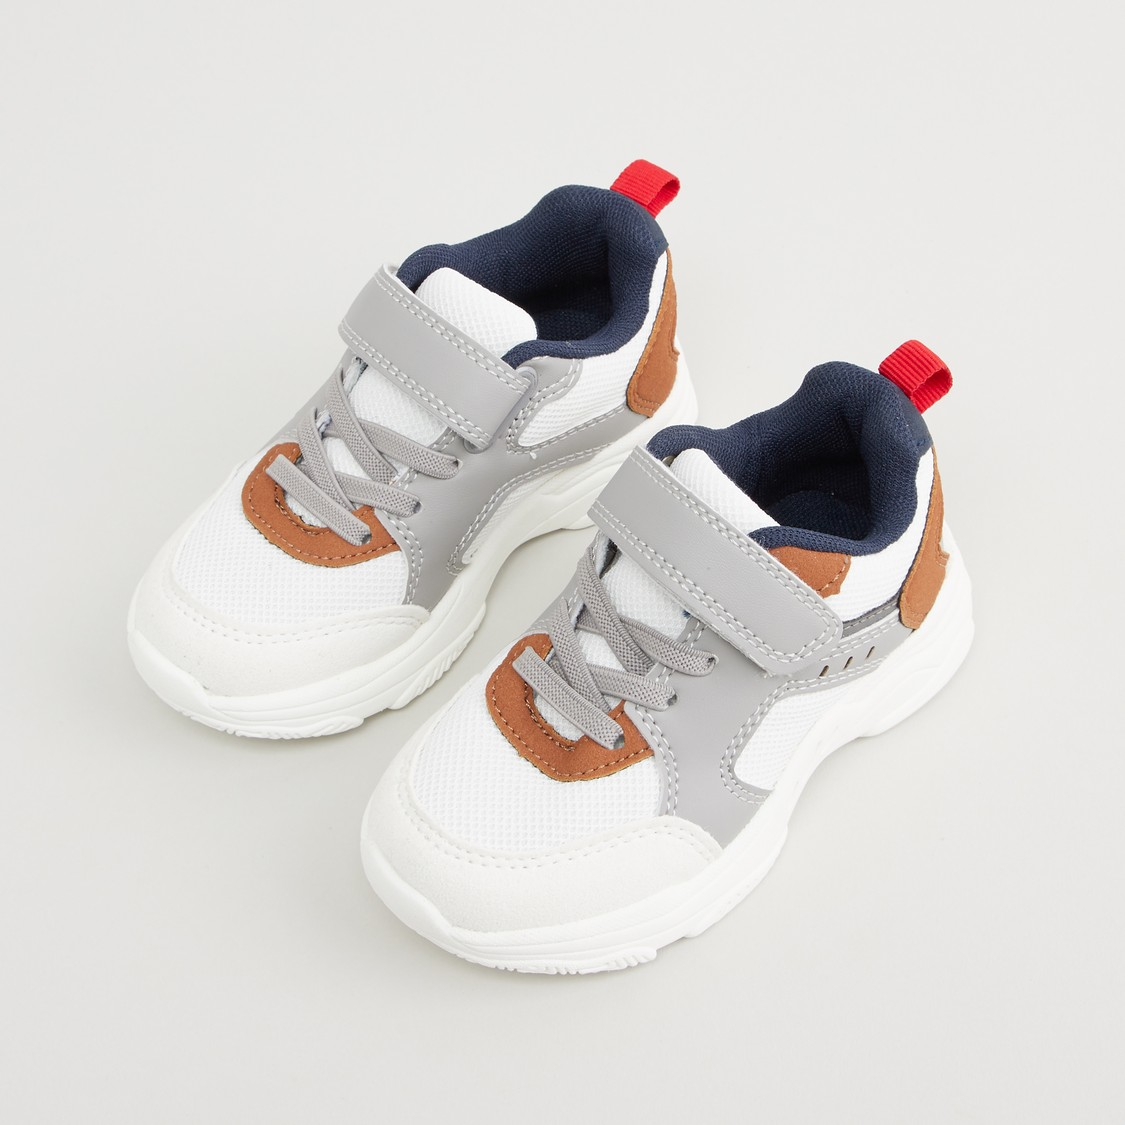 Colourblock Sports Shoes with Snap Closure